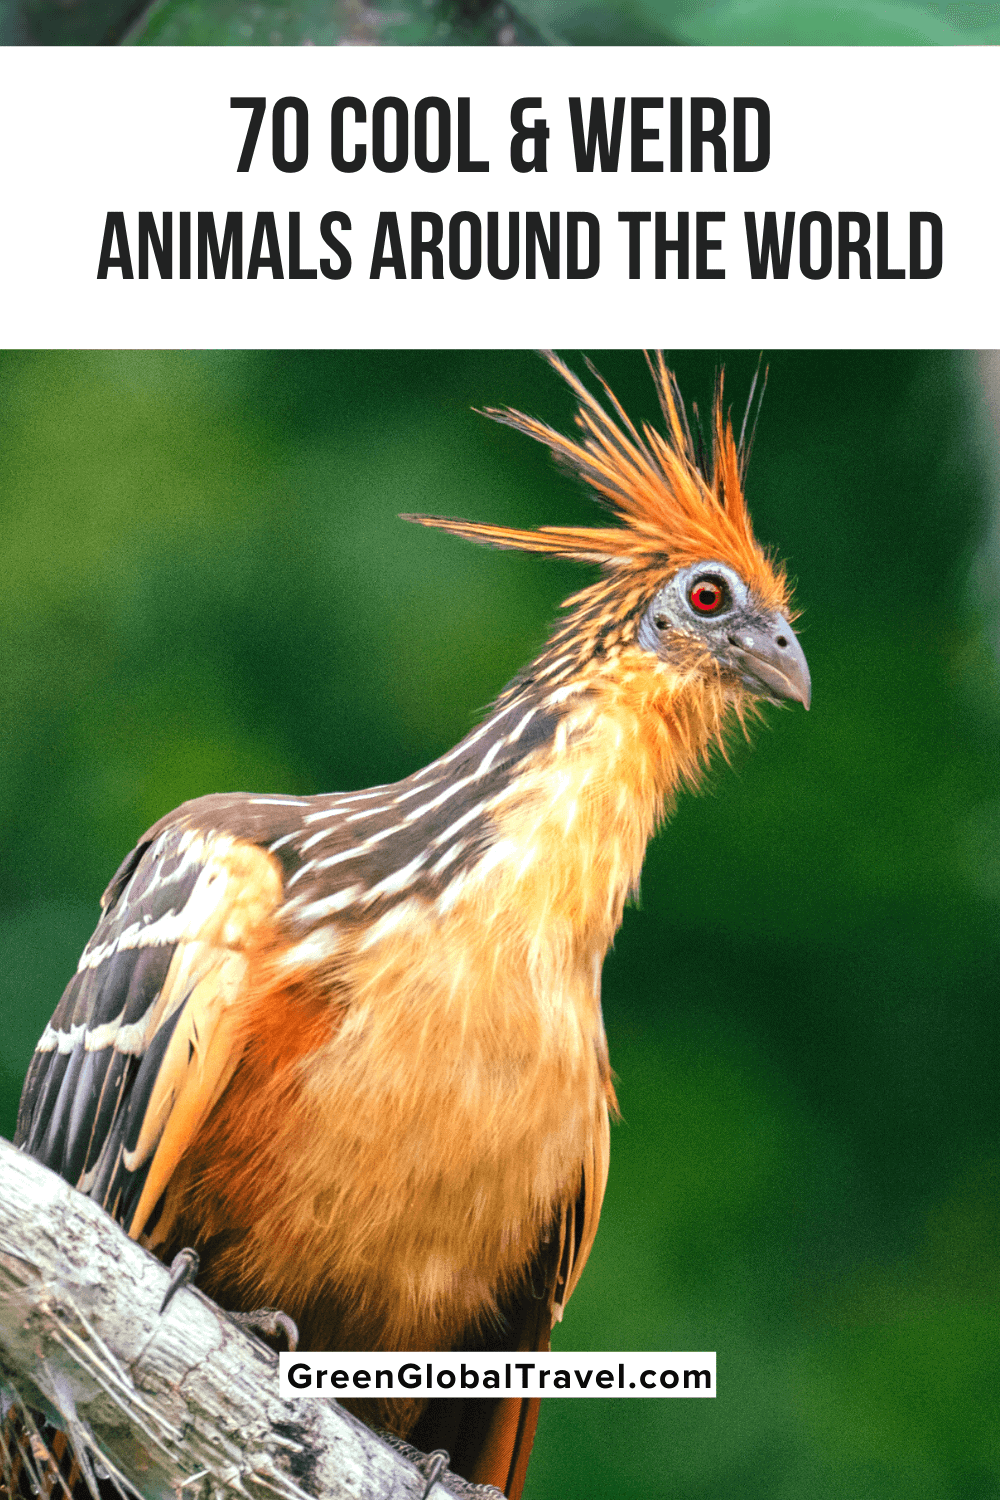 Love animals? Check out our epic guide to 70 Cool & Weird Animals Around the World with strange animals from the Sea, weird birds, unusual insects, unique amphibians & reptiles, cool mammals and weird-looking nocturnal animals | weird animals | cool animals | strange animals | unique animals | interesting animals | funny looking animals | unusual animals |weird looking animals | weird creatures | weirdest animals in the world | odd animals | real weird animals | most unusual animals